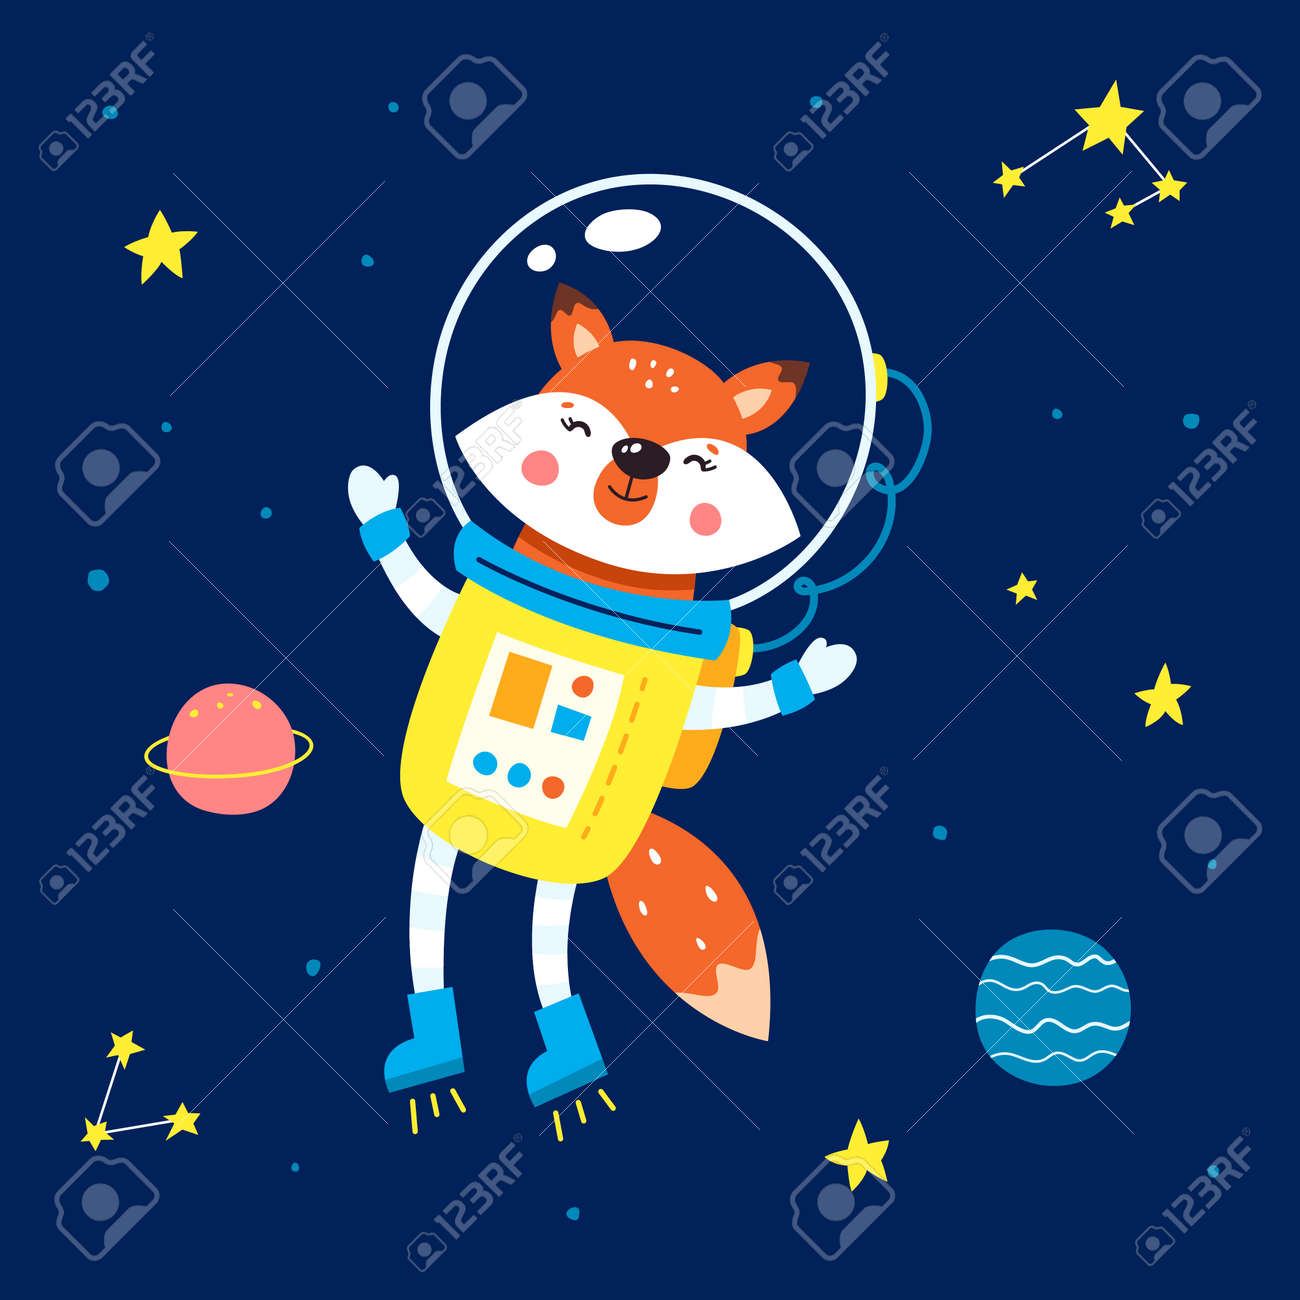 Animals in space. Vector illustration on a blue background. - 169771678